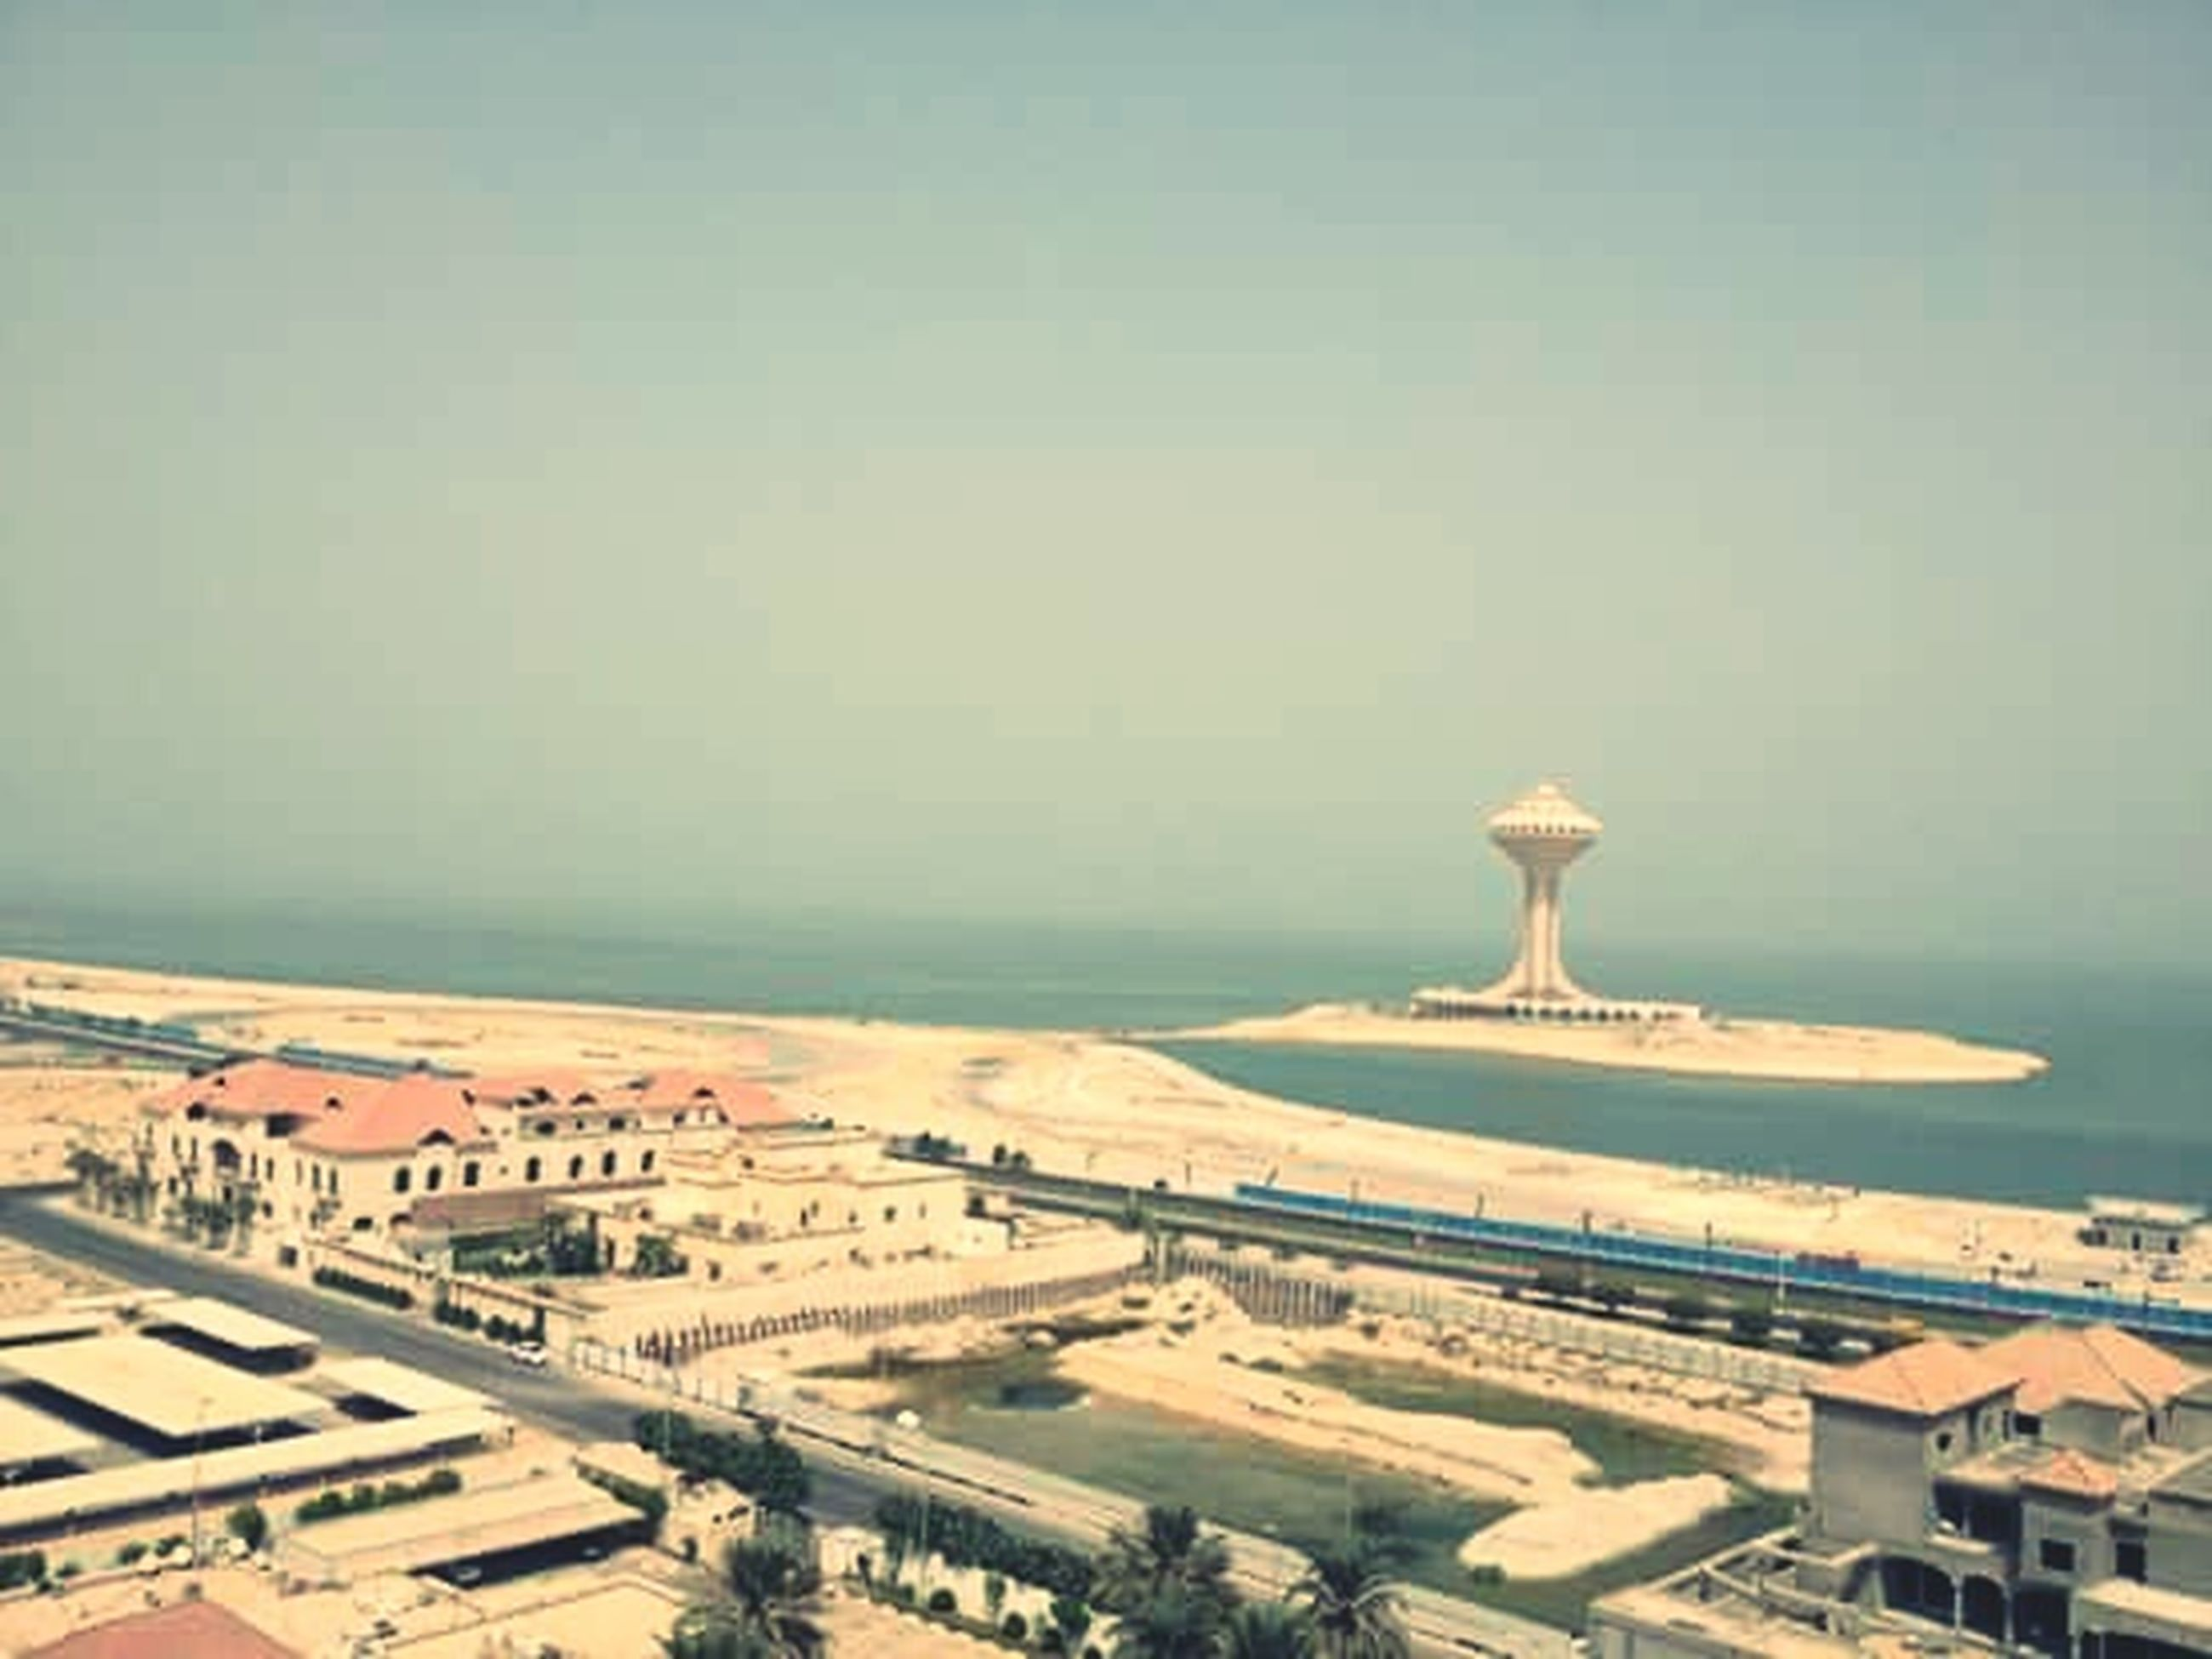 sea, horizon over water, copy space, water, clear sky, beach, built structure, sky, architecture, shore, day, sand, tranquil scene, tranquility, nature, outdoors, scenics, no people, building exterior, ocean